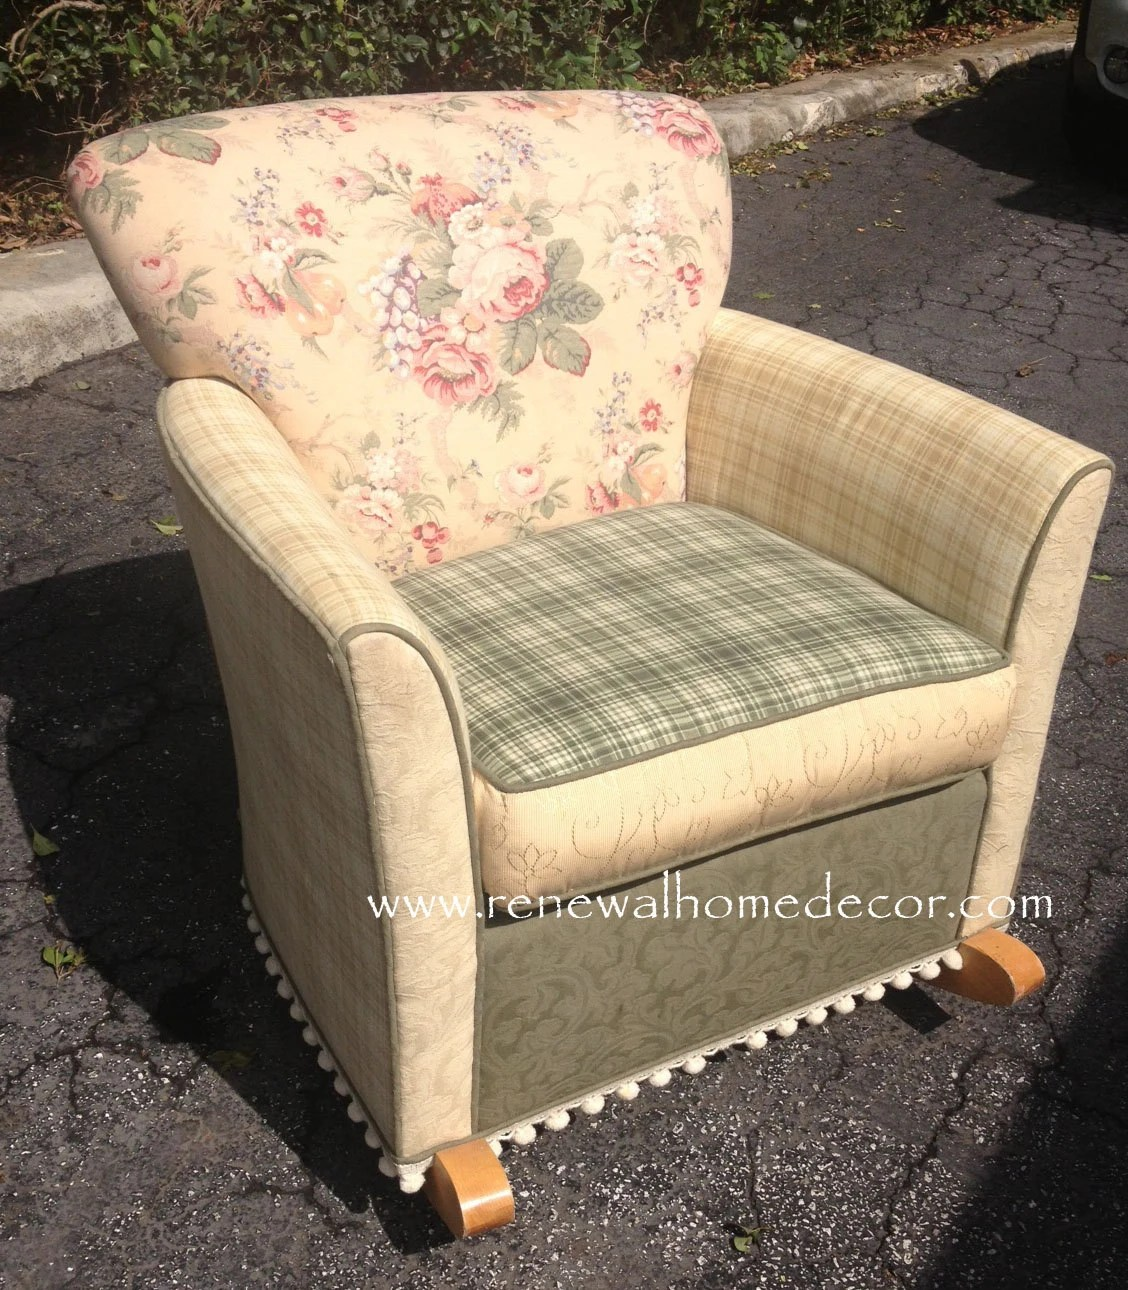 Upholstered Glider Chair Upholstered Rocking Chair Slipcover Upholstered Nursery